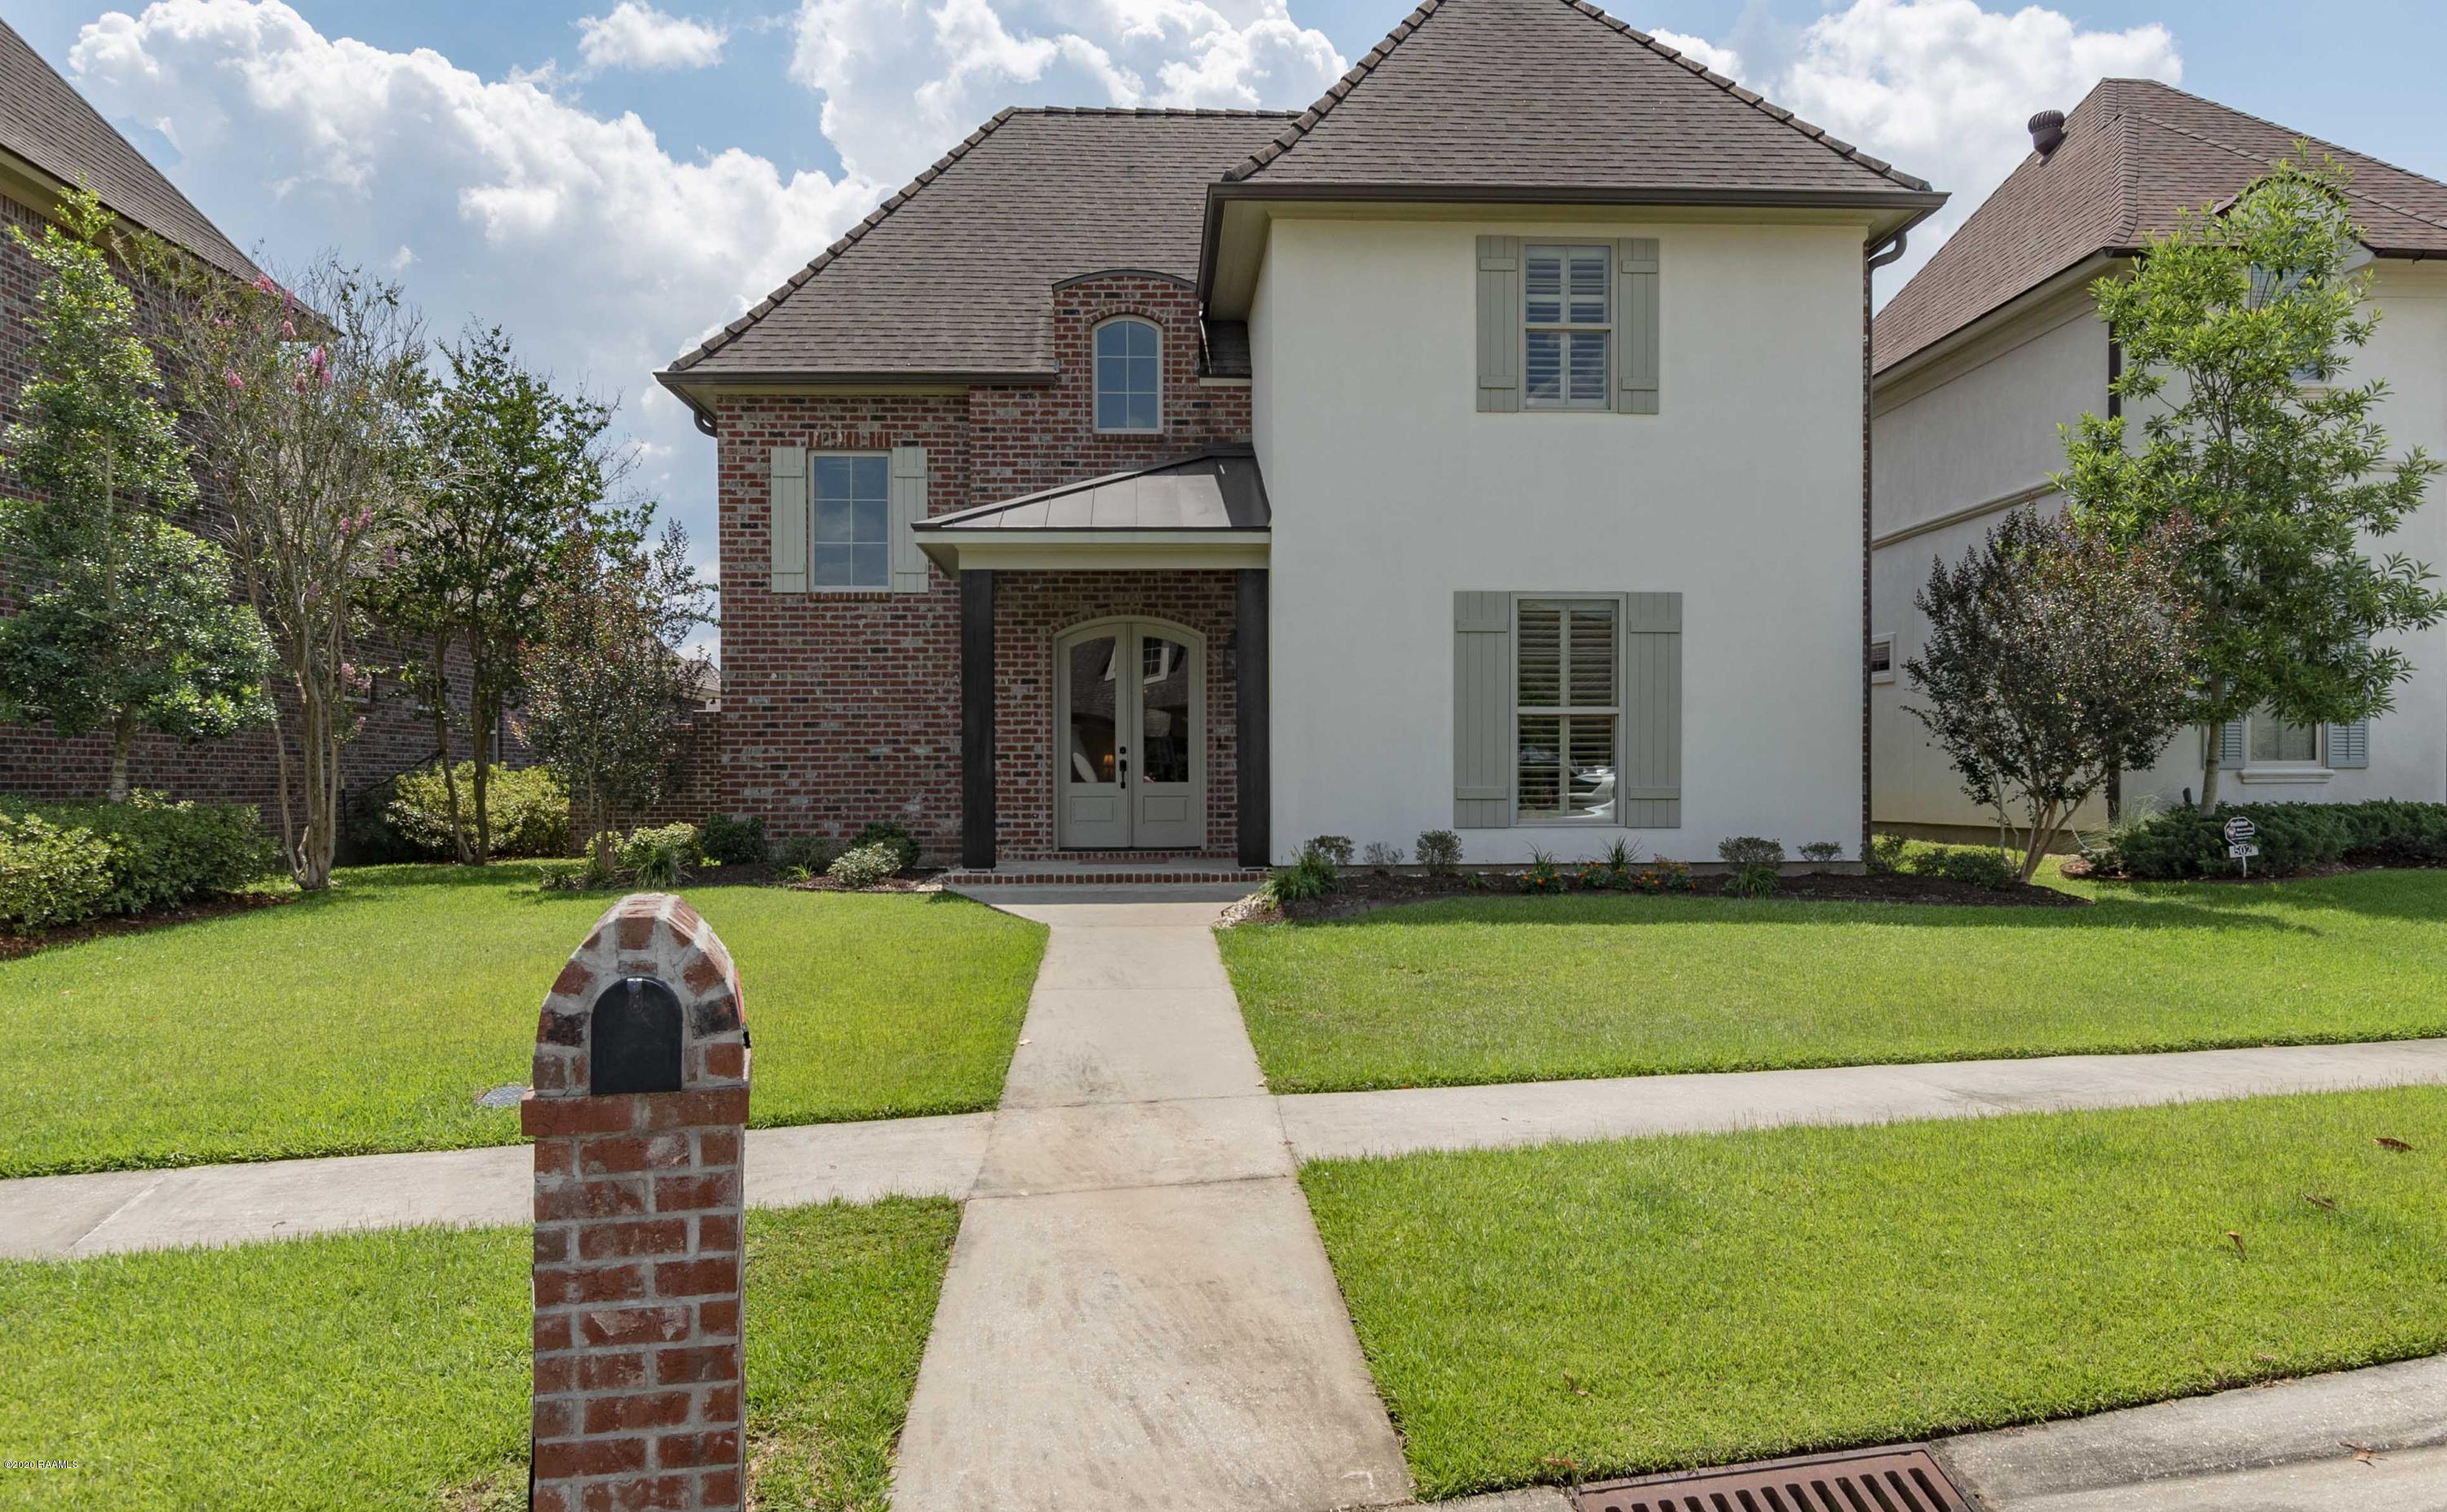 504 Torrenova Circle, Lafayette, LA 70508 Photo #1